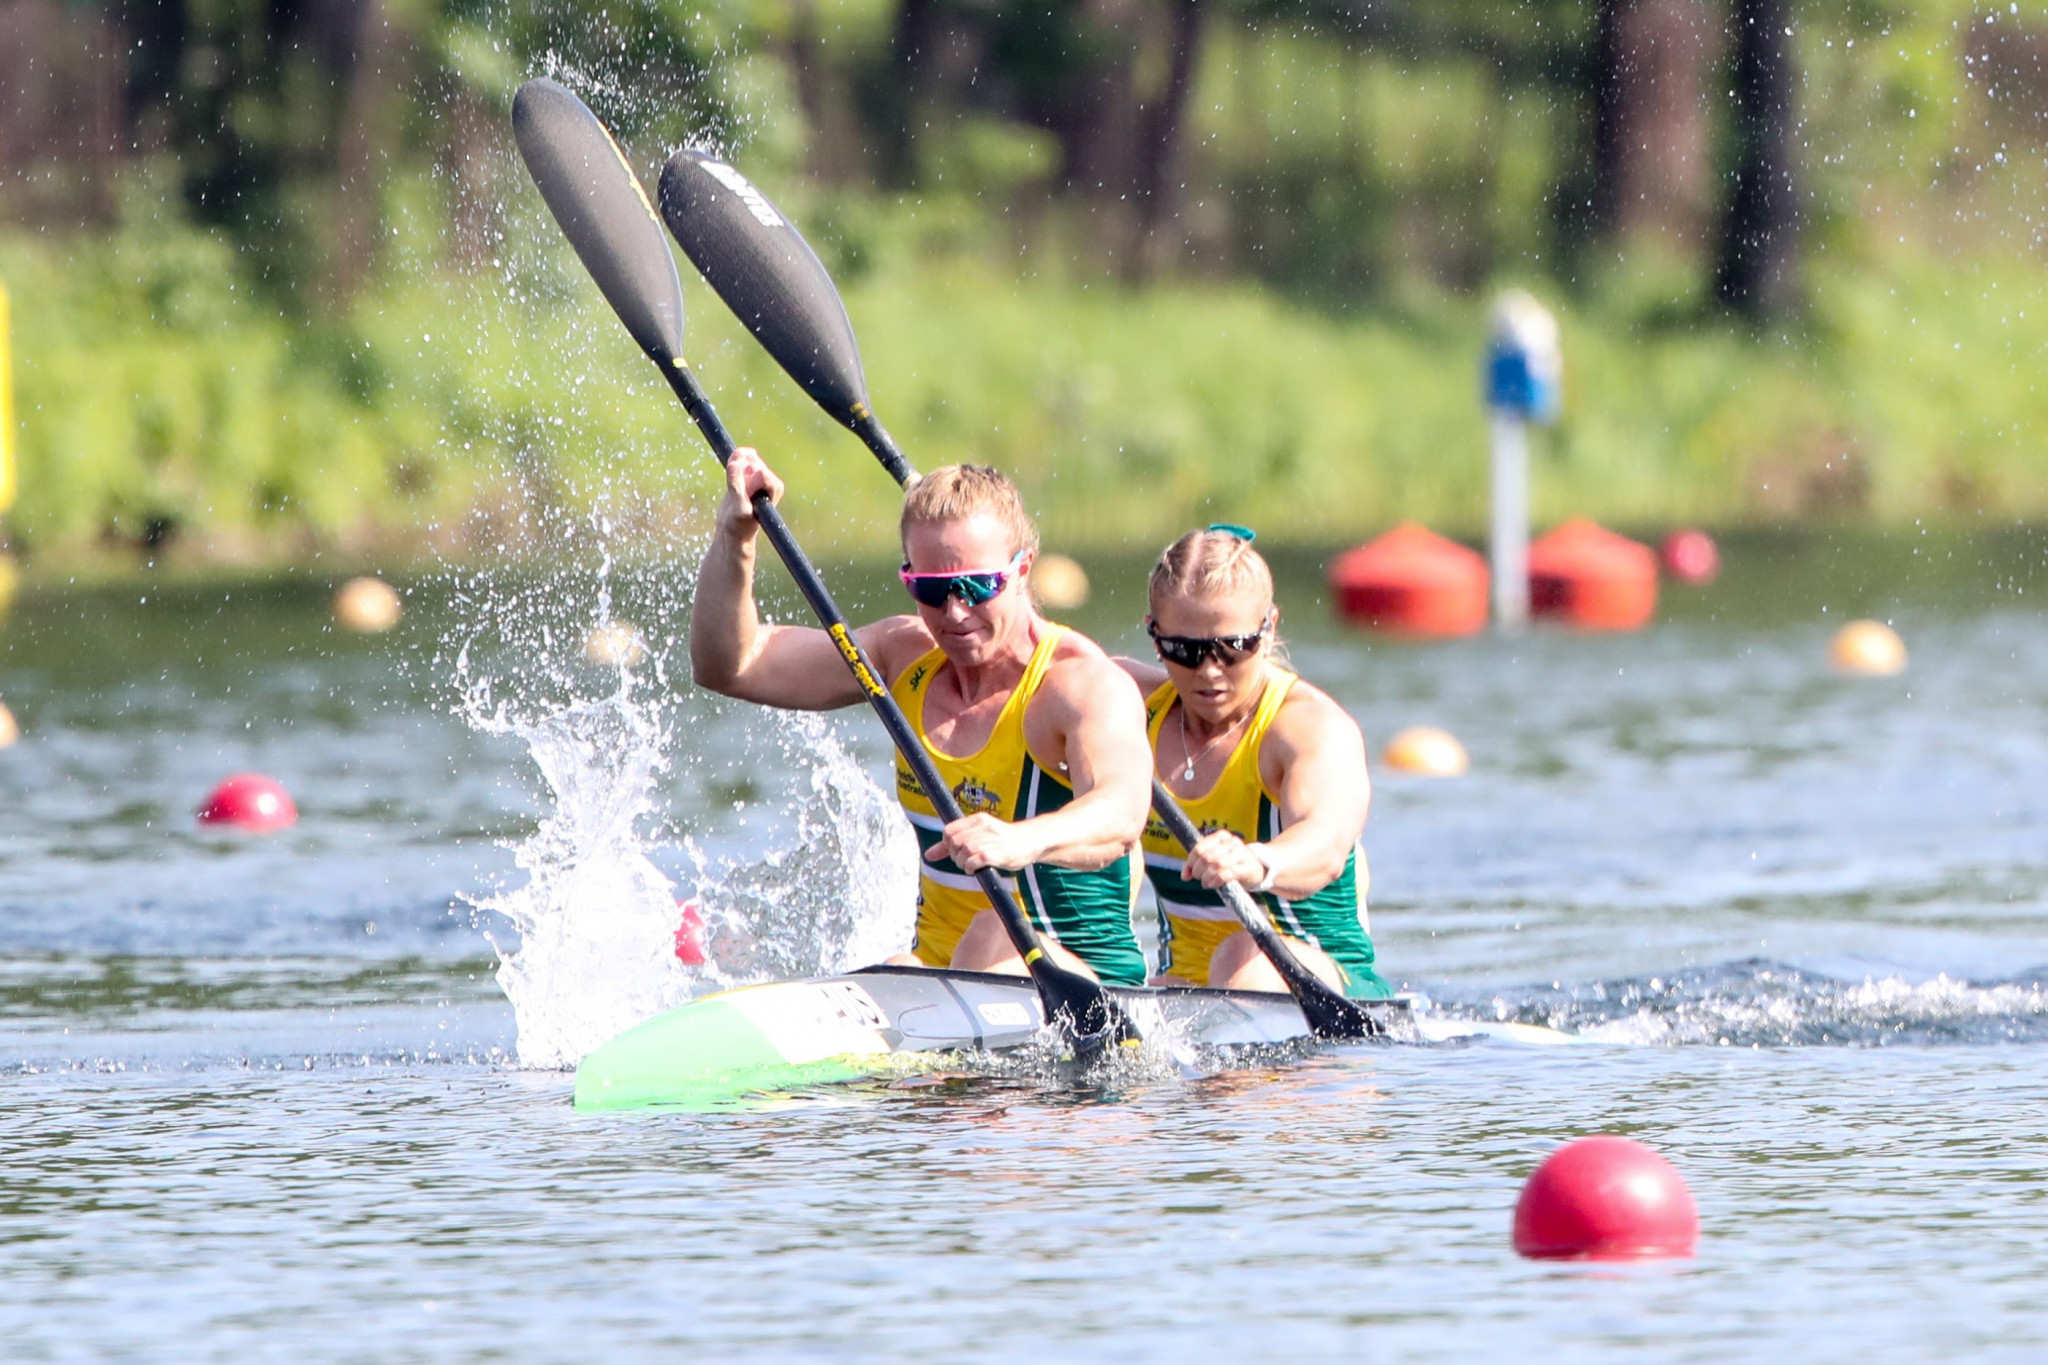 Brianna Massie, right, and Jo Brigden-Jones of Australia competed in the women's C2 race at the International Canoe Federation World Cup in Duisburg ©Bence Vekassy/Paddle Australia